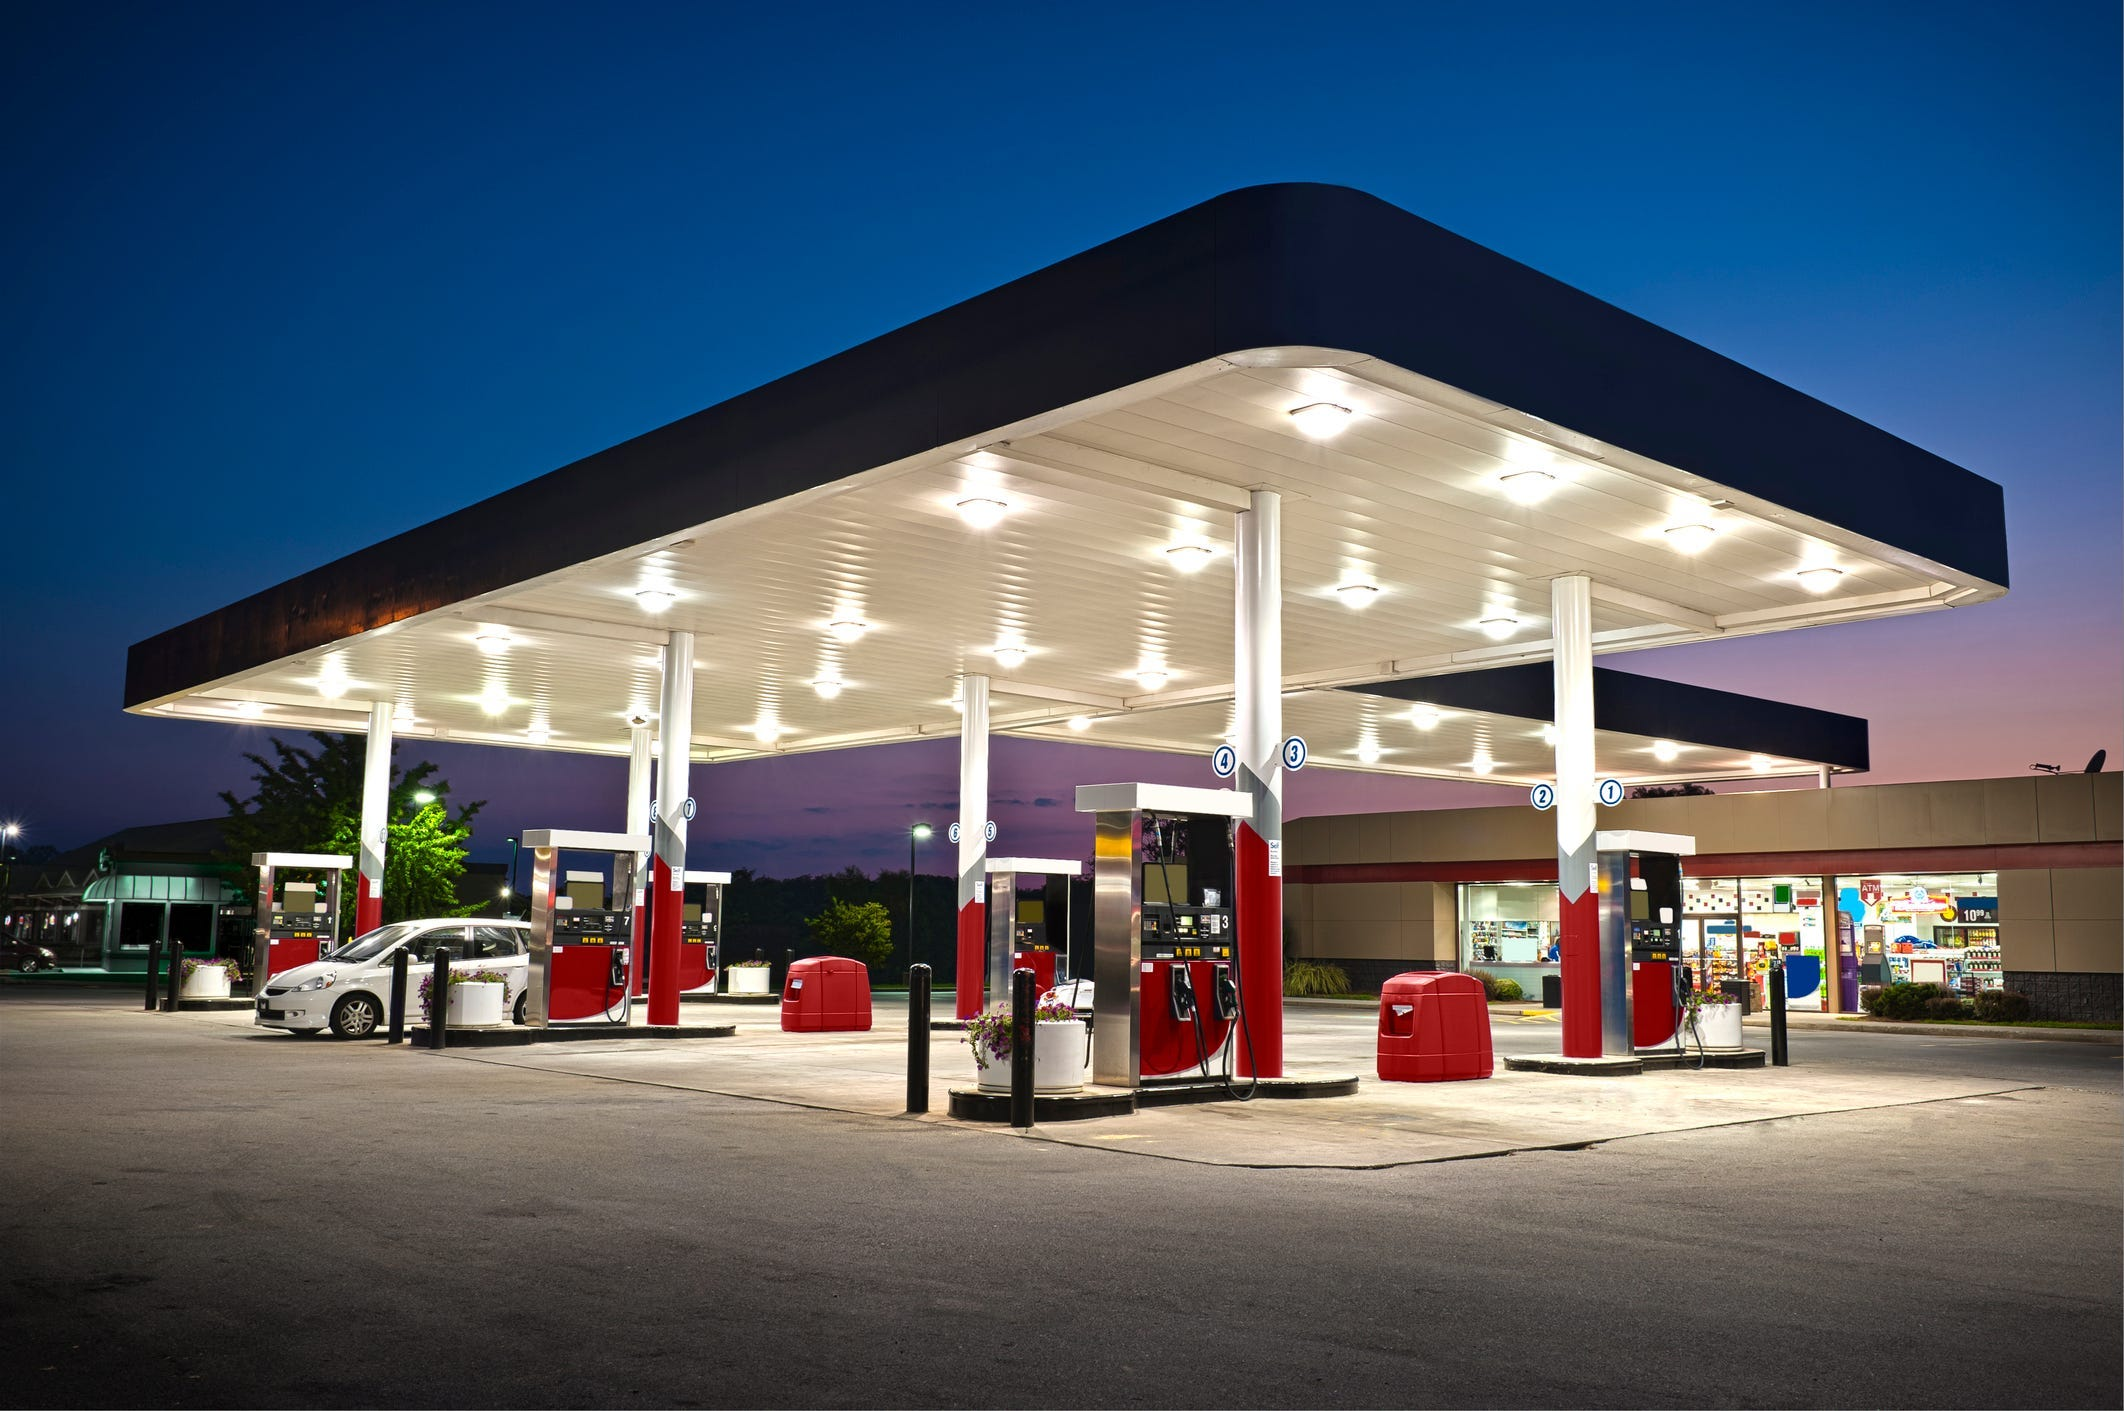 Road trip! These are the best gas station brands in the US, according to readers